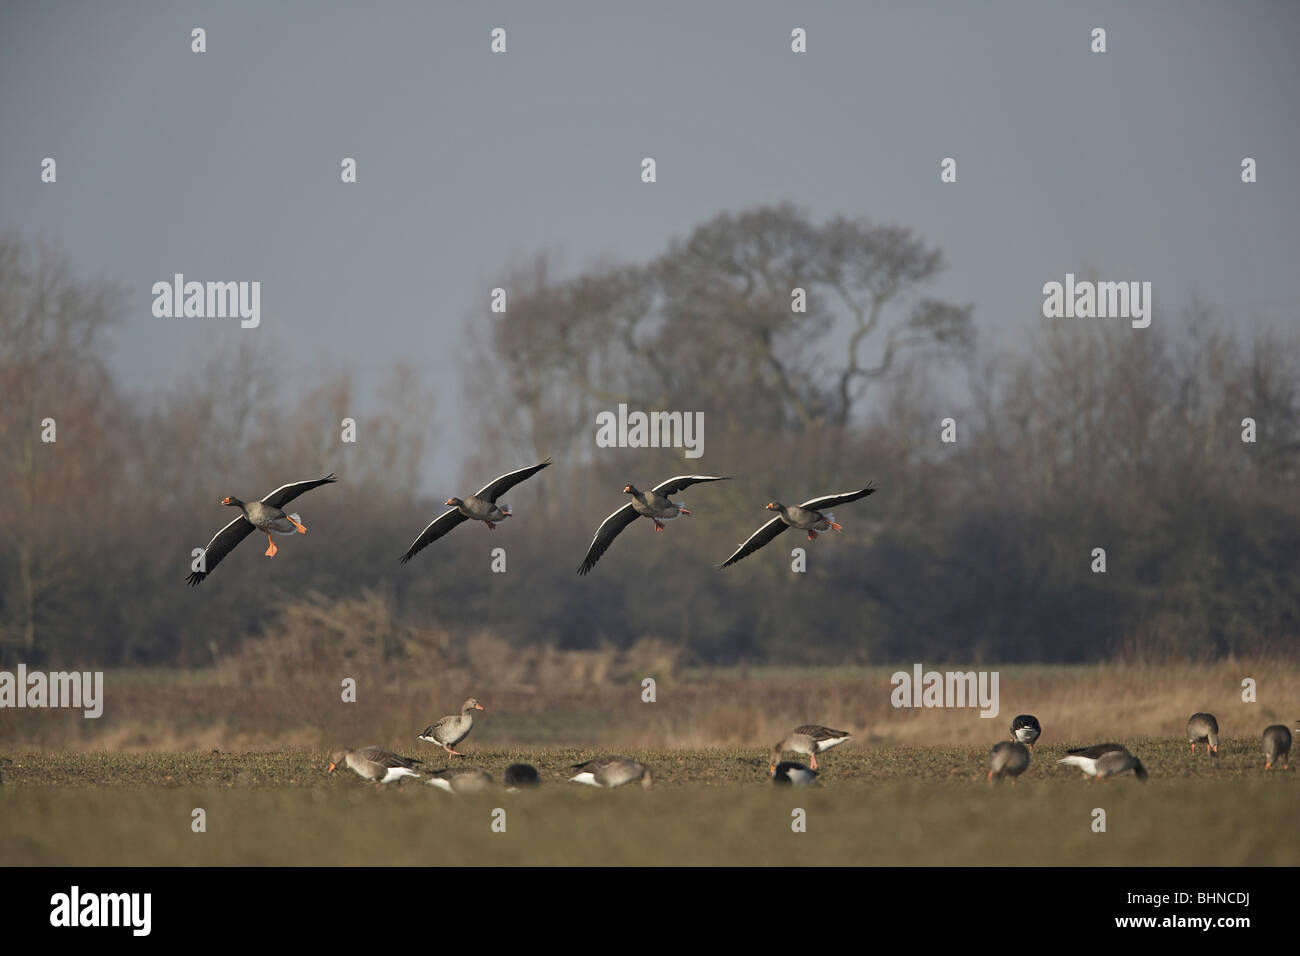 Greylag Goose, Anser anser flying in to feed with other geese in a field Stock Photo